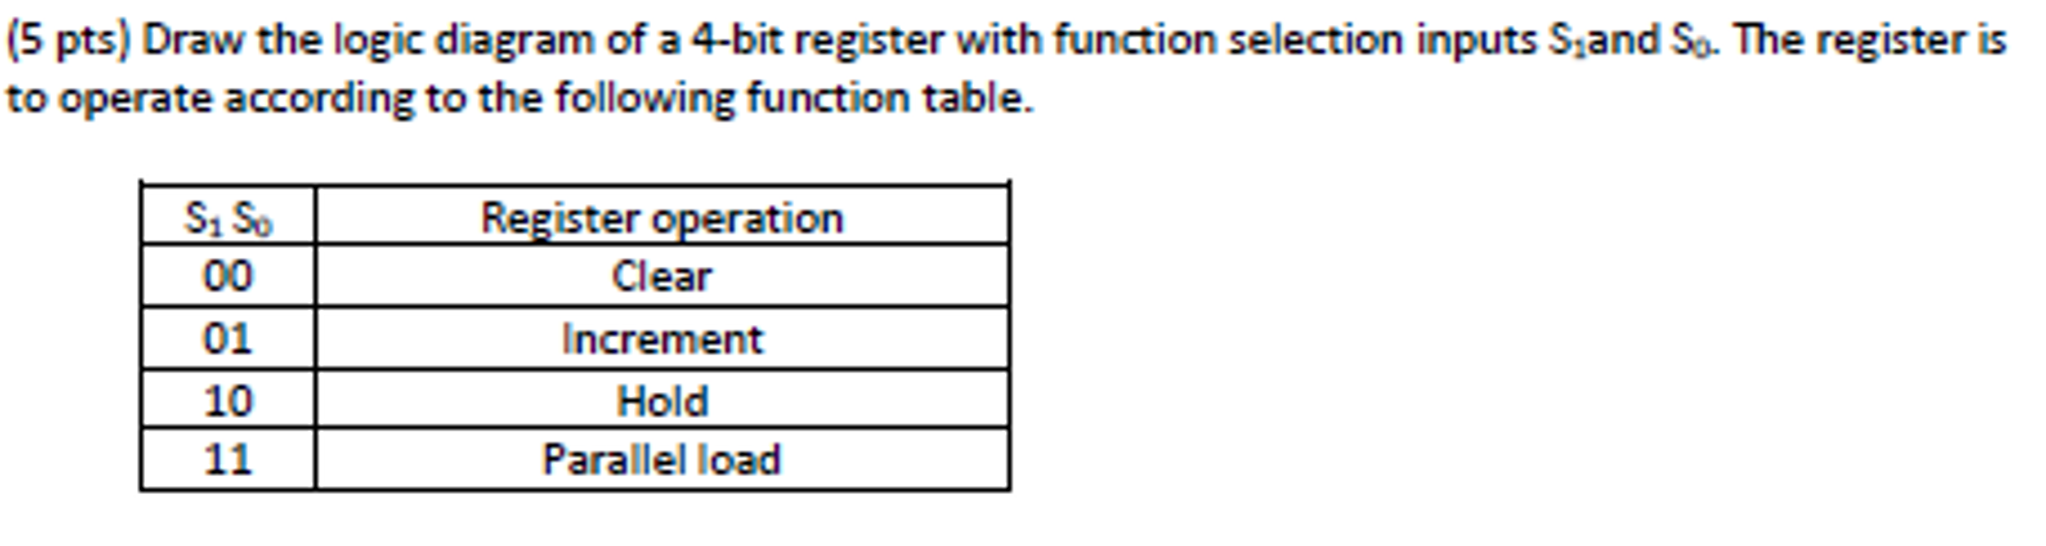 Draw The Logic Diagram Of A 4 Bit Register With Fu